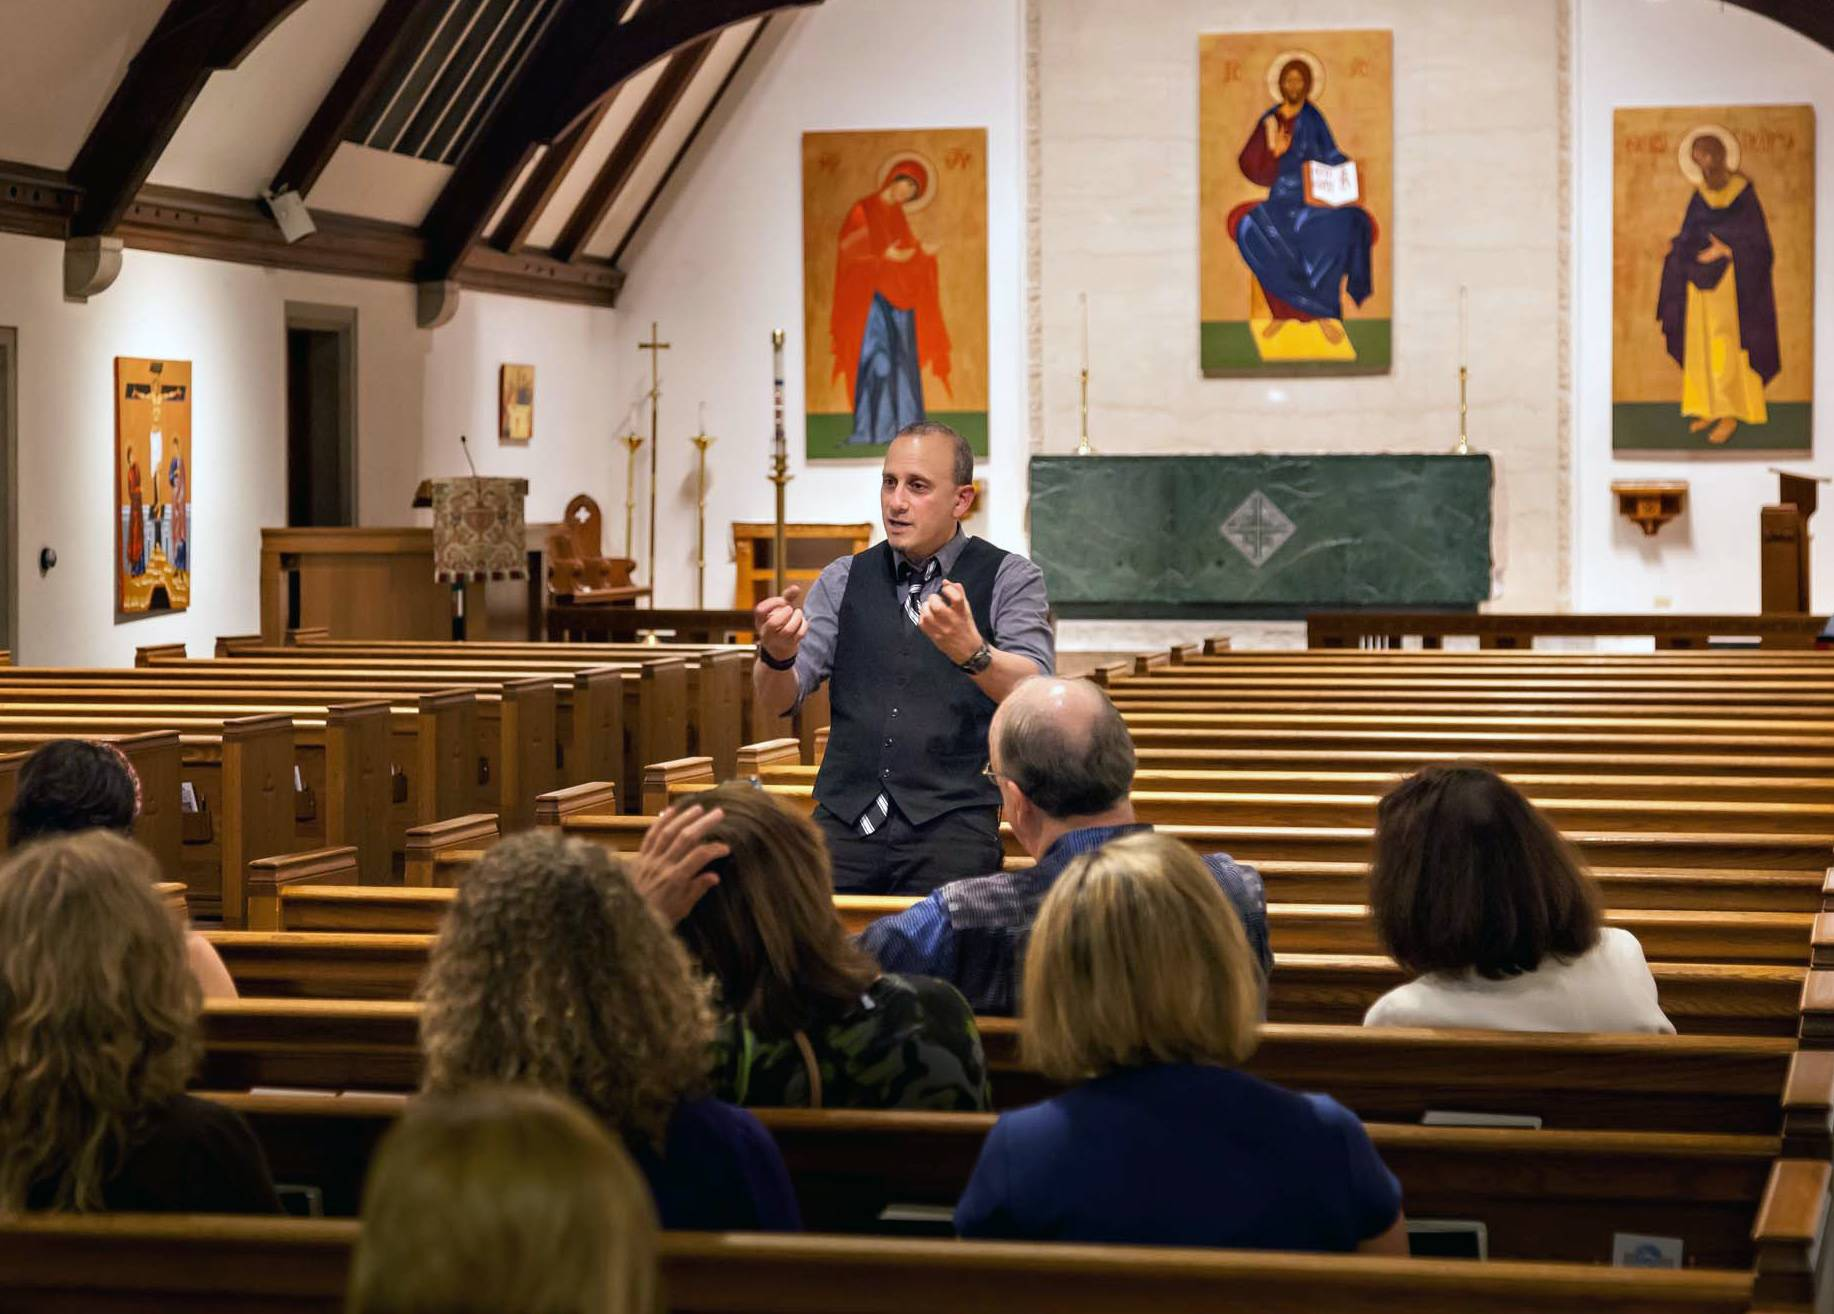 Joseph Malham engages his Opening Night audience with his wit and wisdom.  His new Triptych is shown above the altar at St. Mark's Episcopal Church.Peter Vagt